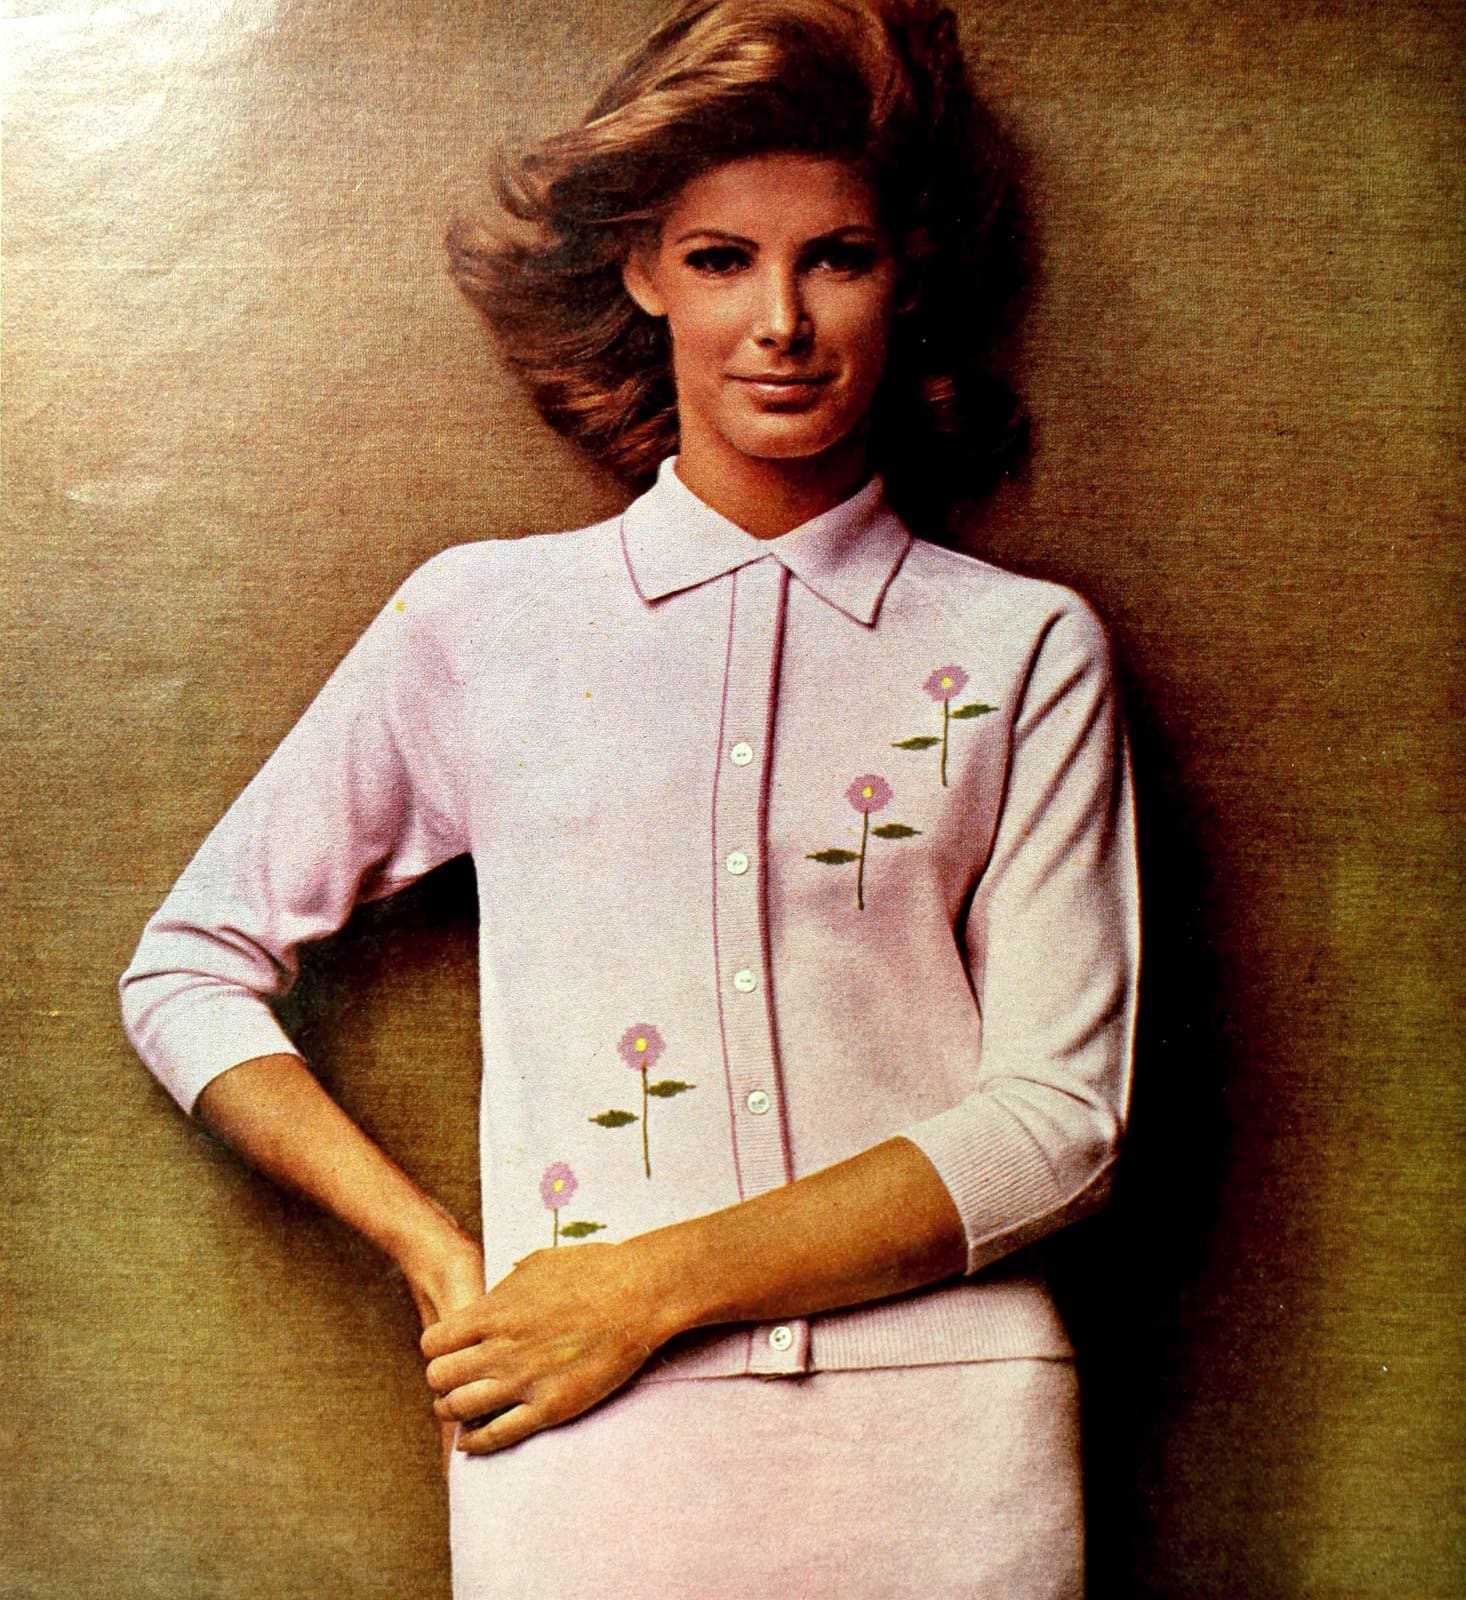 Classic stylish pink cardigan sweater with flower designs stitched on (1965)